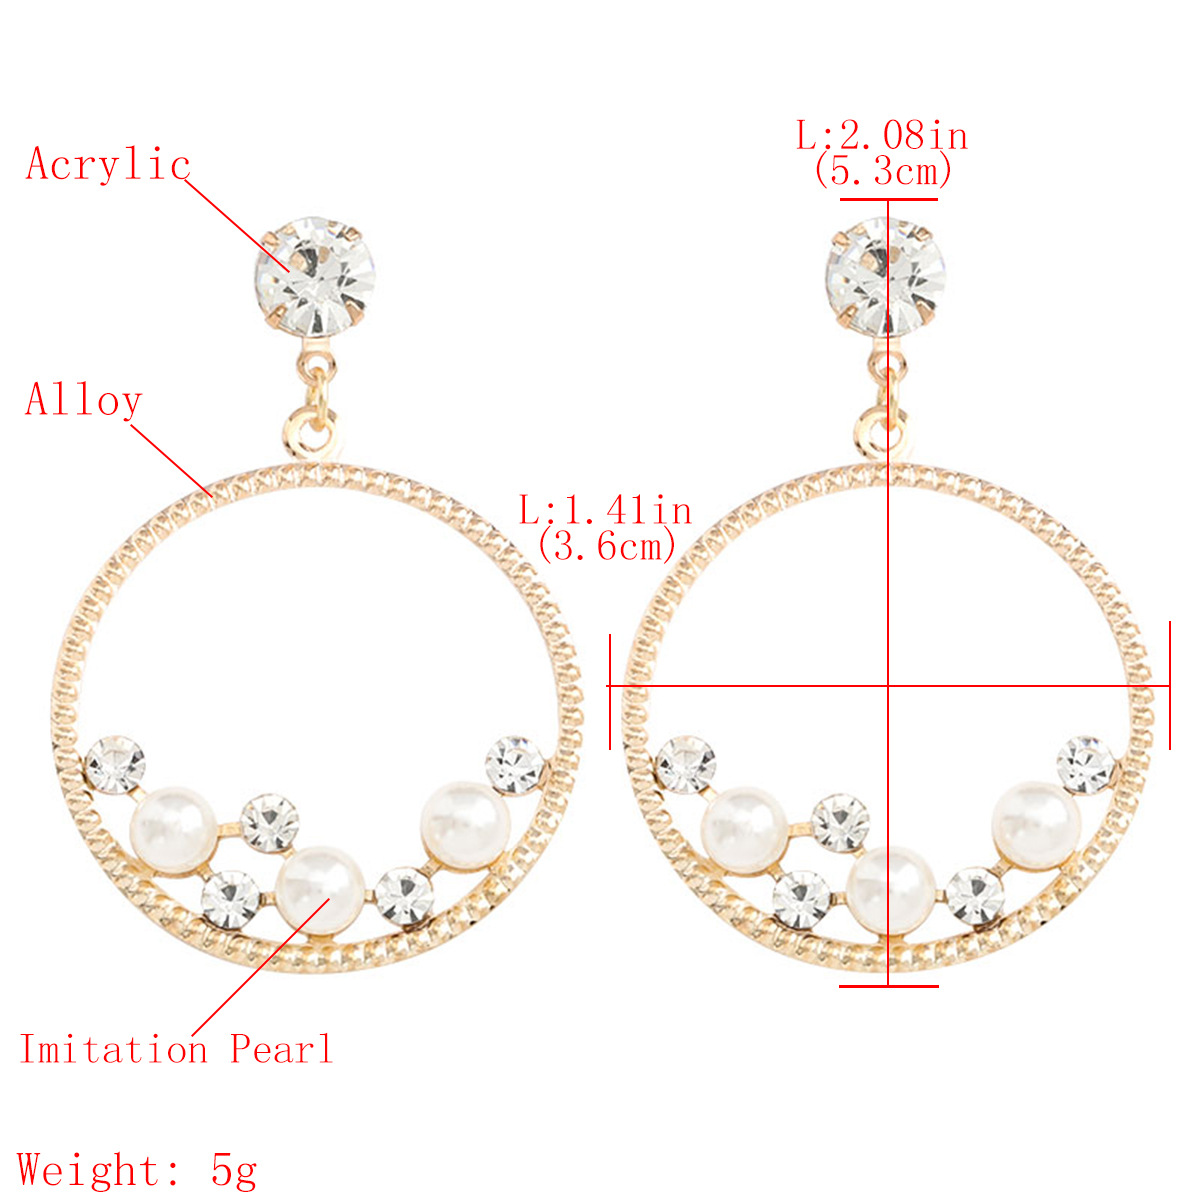 New fashion round alloy acrylic earrings with diamonds and pearls for women wholesale NHJE207246